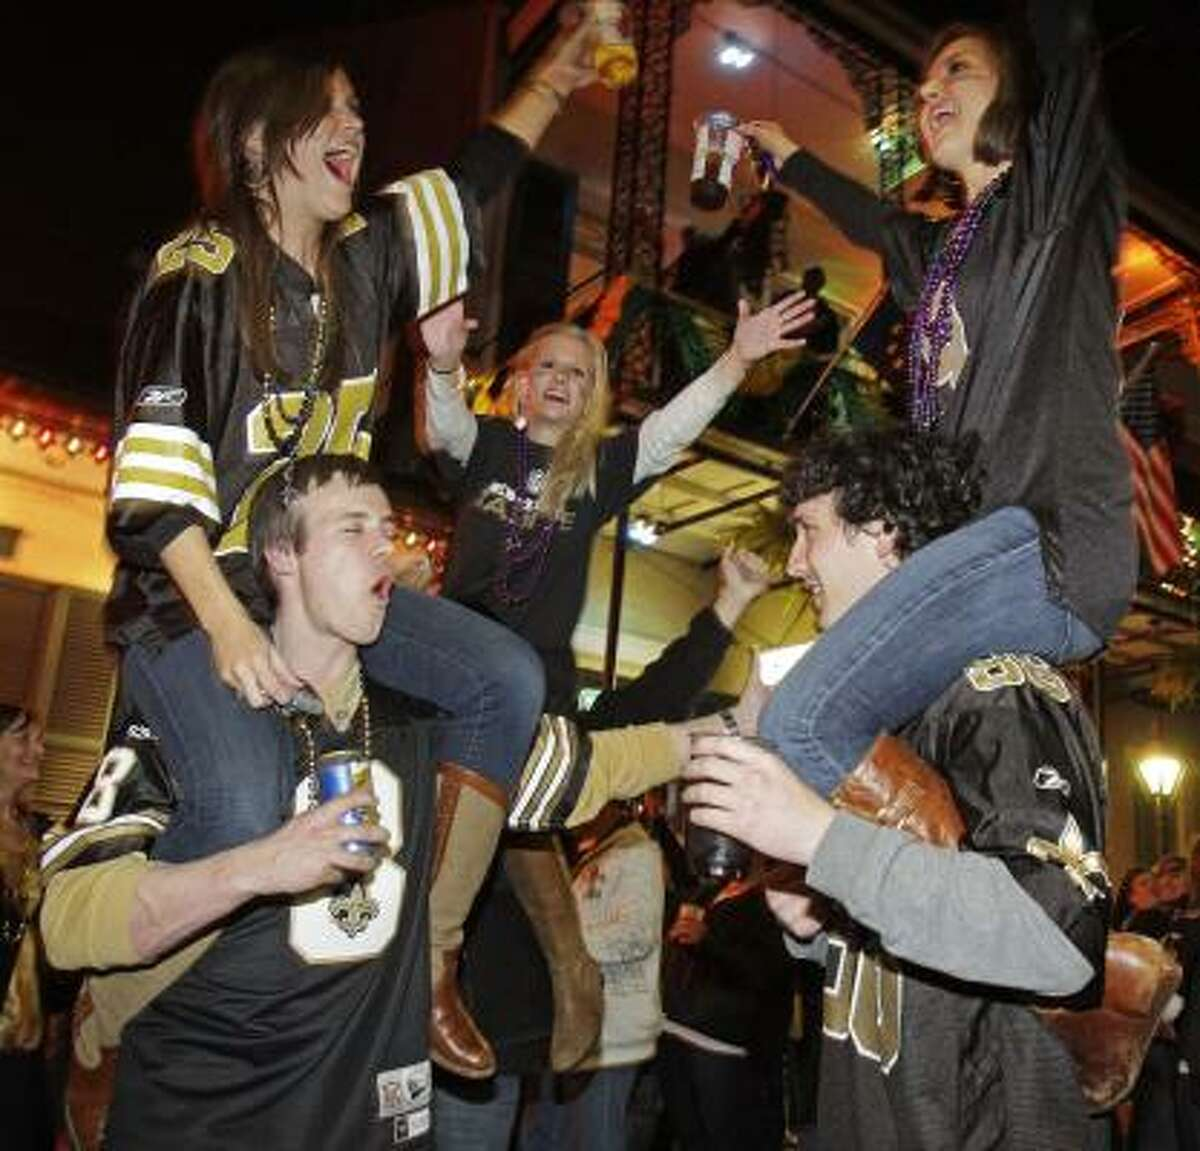 Fans reach new heights as they celebrate in New Orleans.